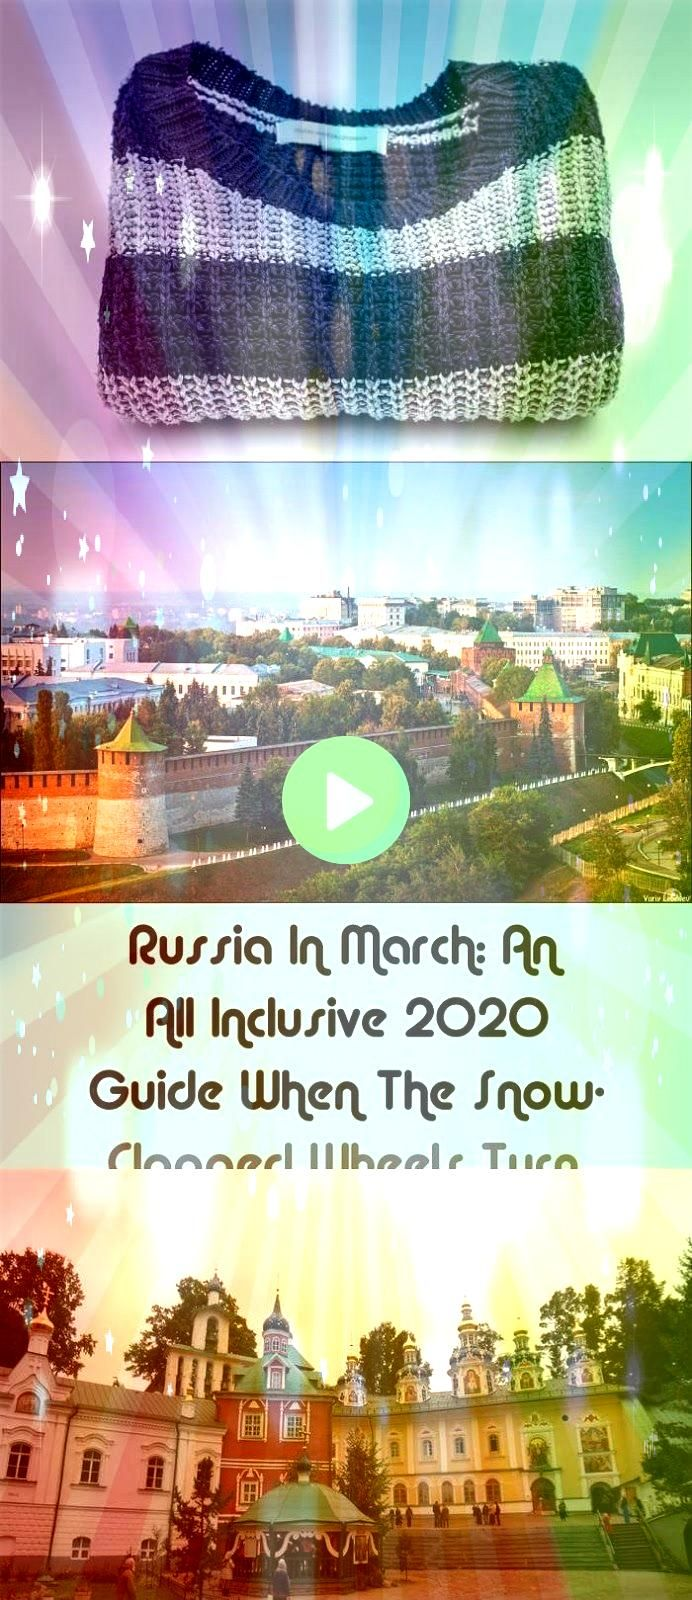 In March An All Inclusive 2020 Information When The SnowClogged Wheels Flip Once more Russia In March An All Inclusive 2020 Information When The SnowClogged Wheels Flip O...